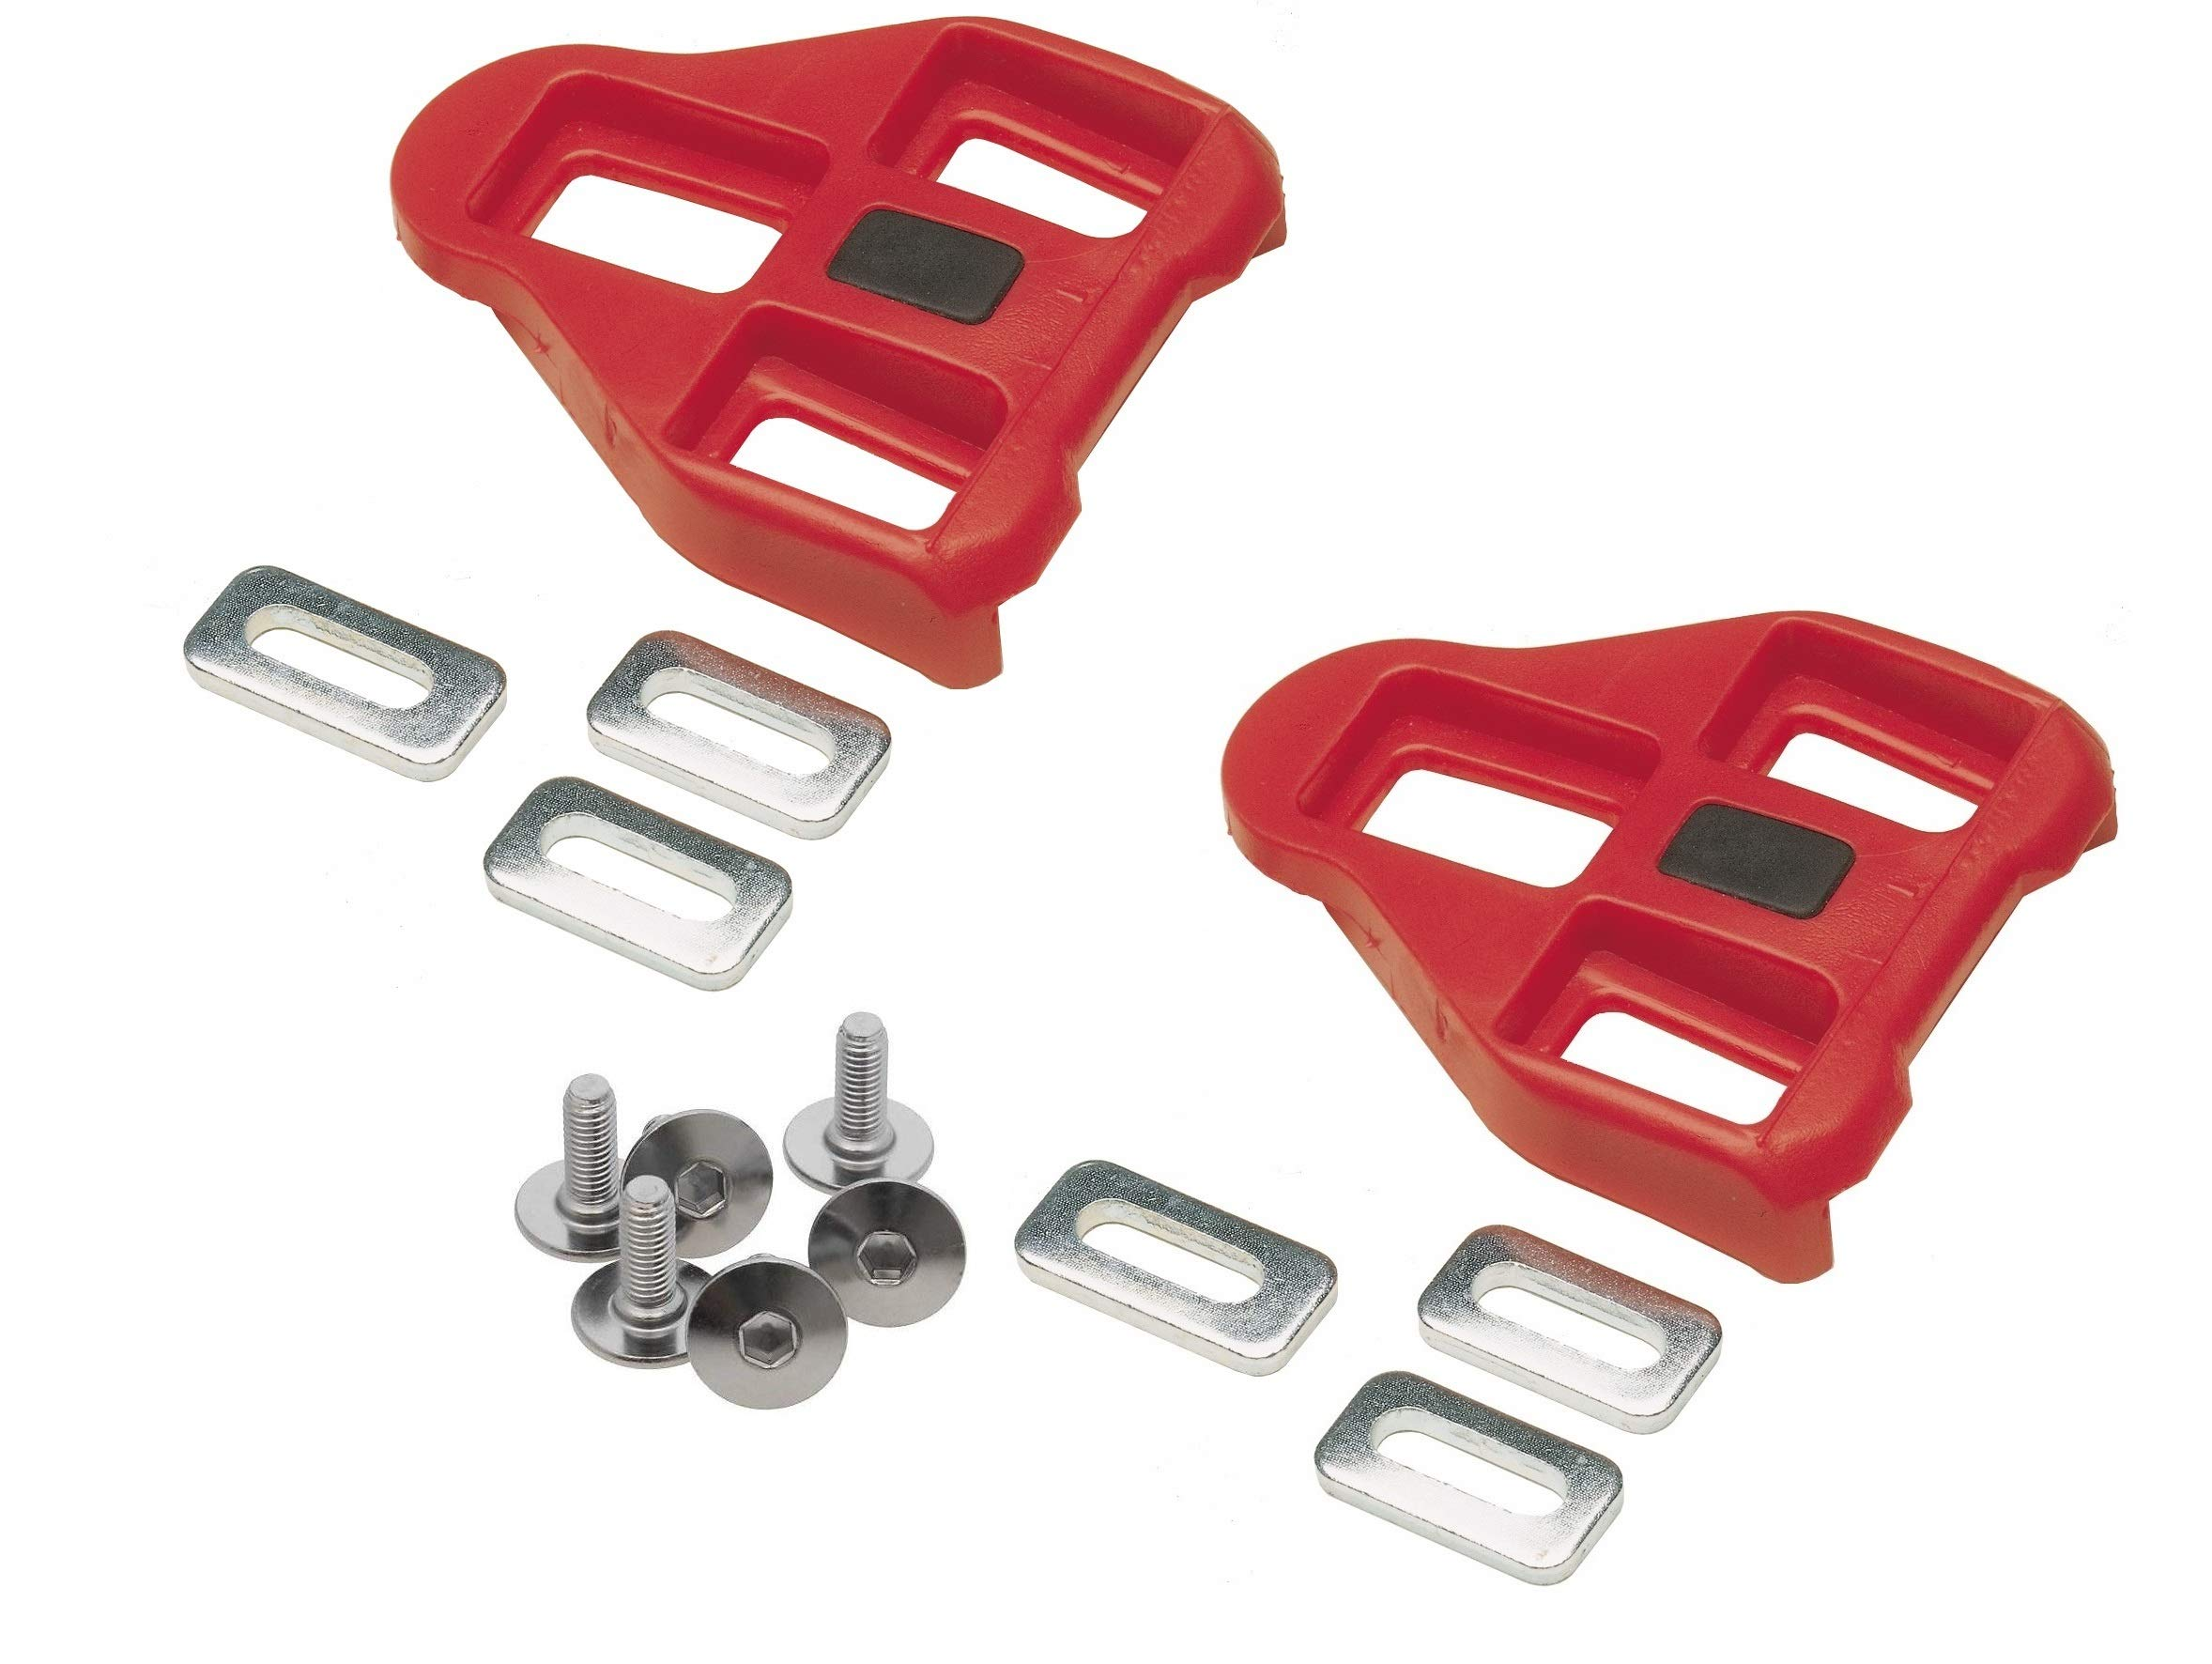 i72 Gio Look Delta Compatible Cleats Red 9 Degree Float - Indoor Cycling and Road Bike by i72